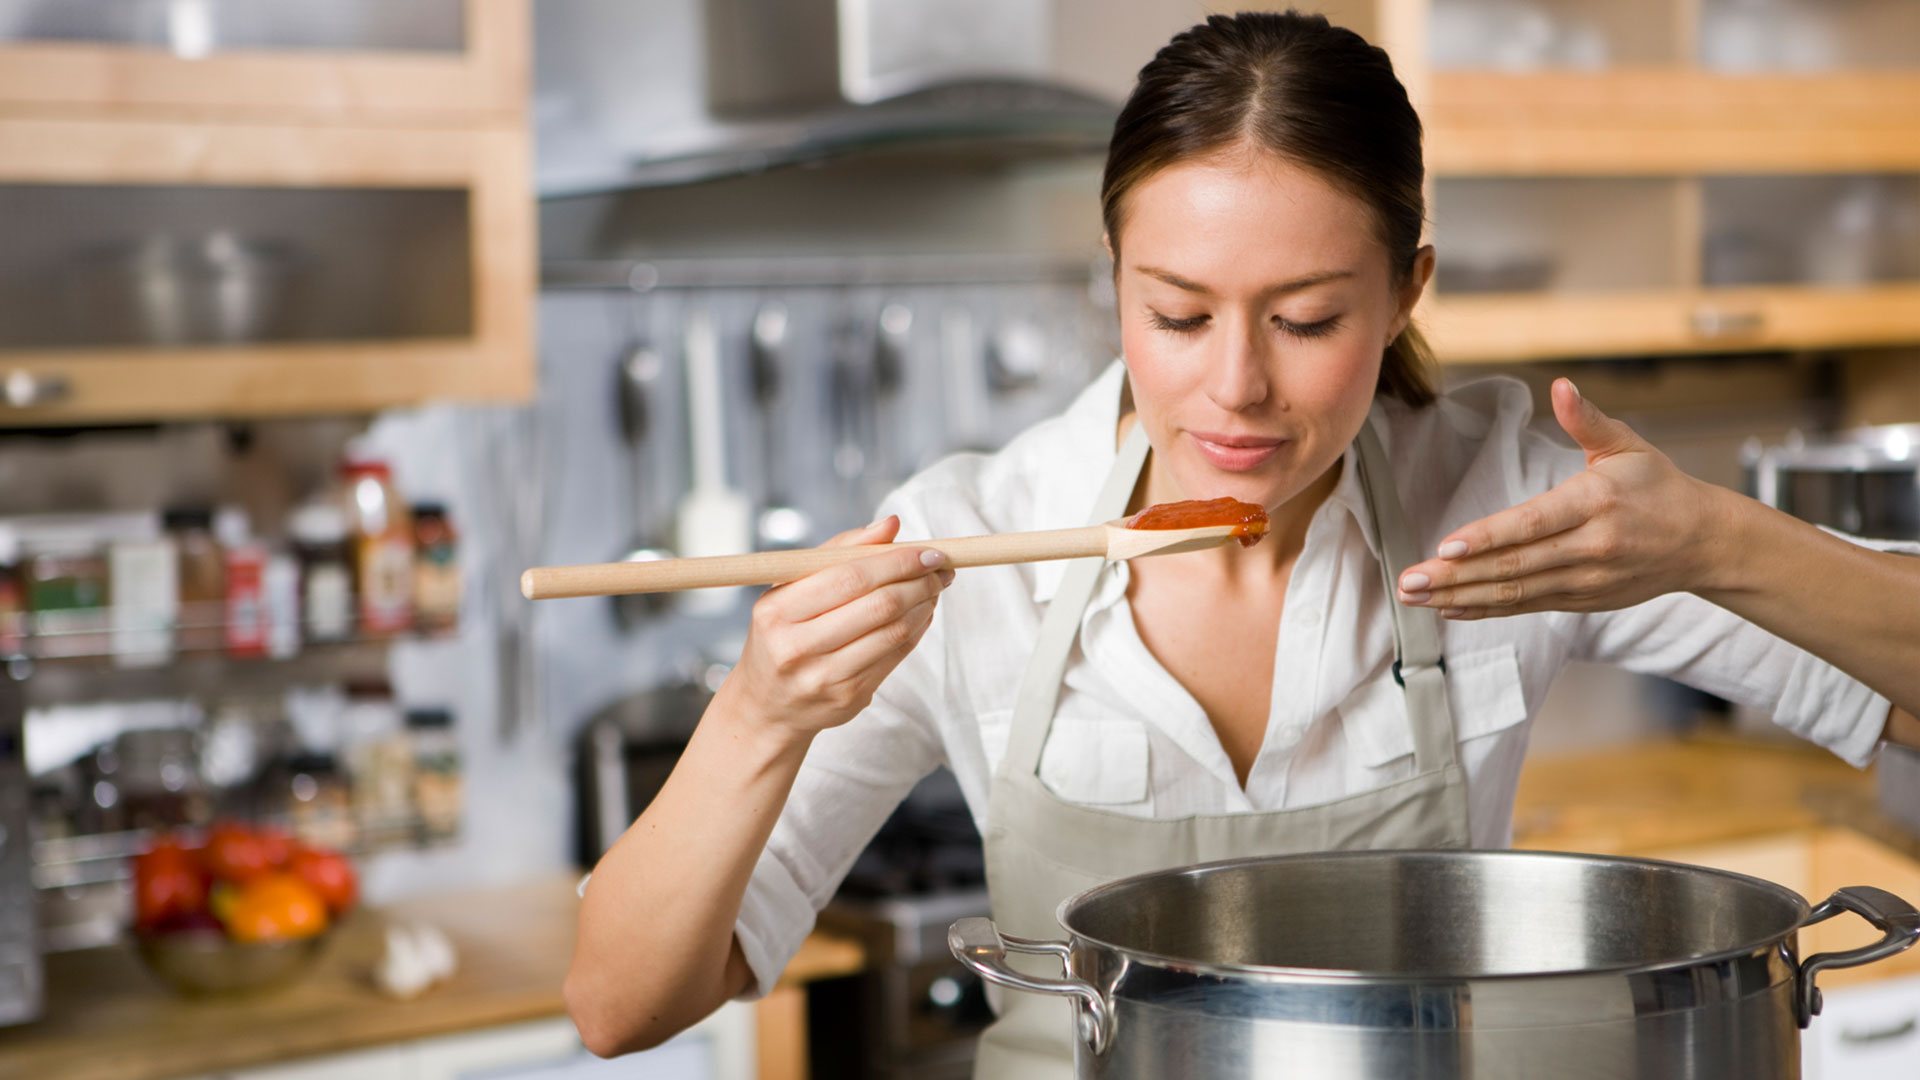 cooking food chefs tips loving woman cook pasta sheknows fresh bricco andrea rf choice photographer credit getty ramsay gordon